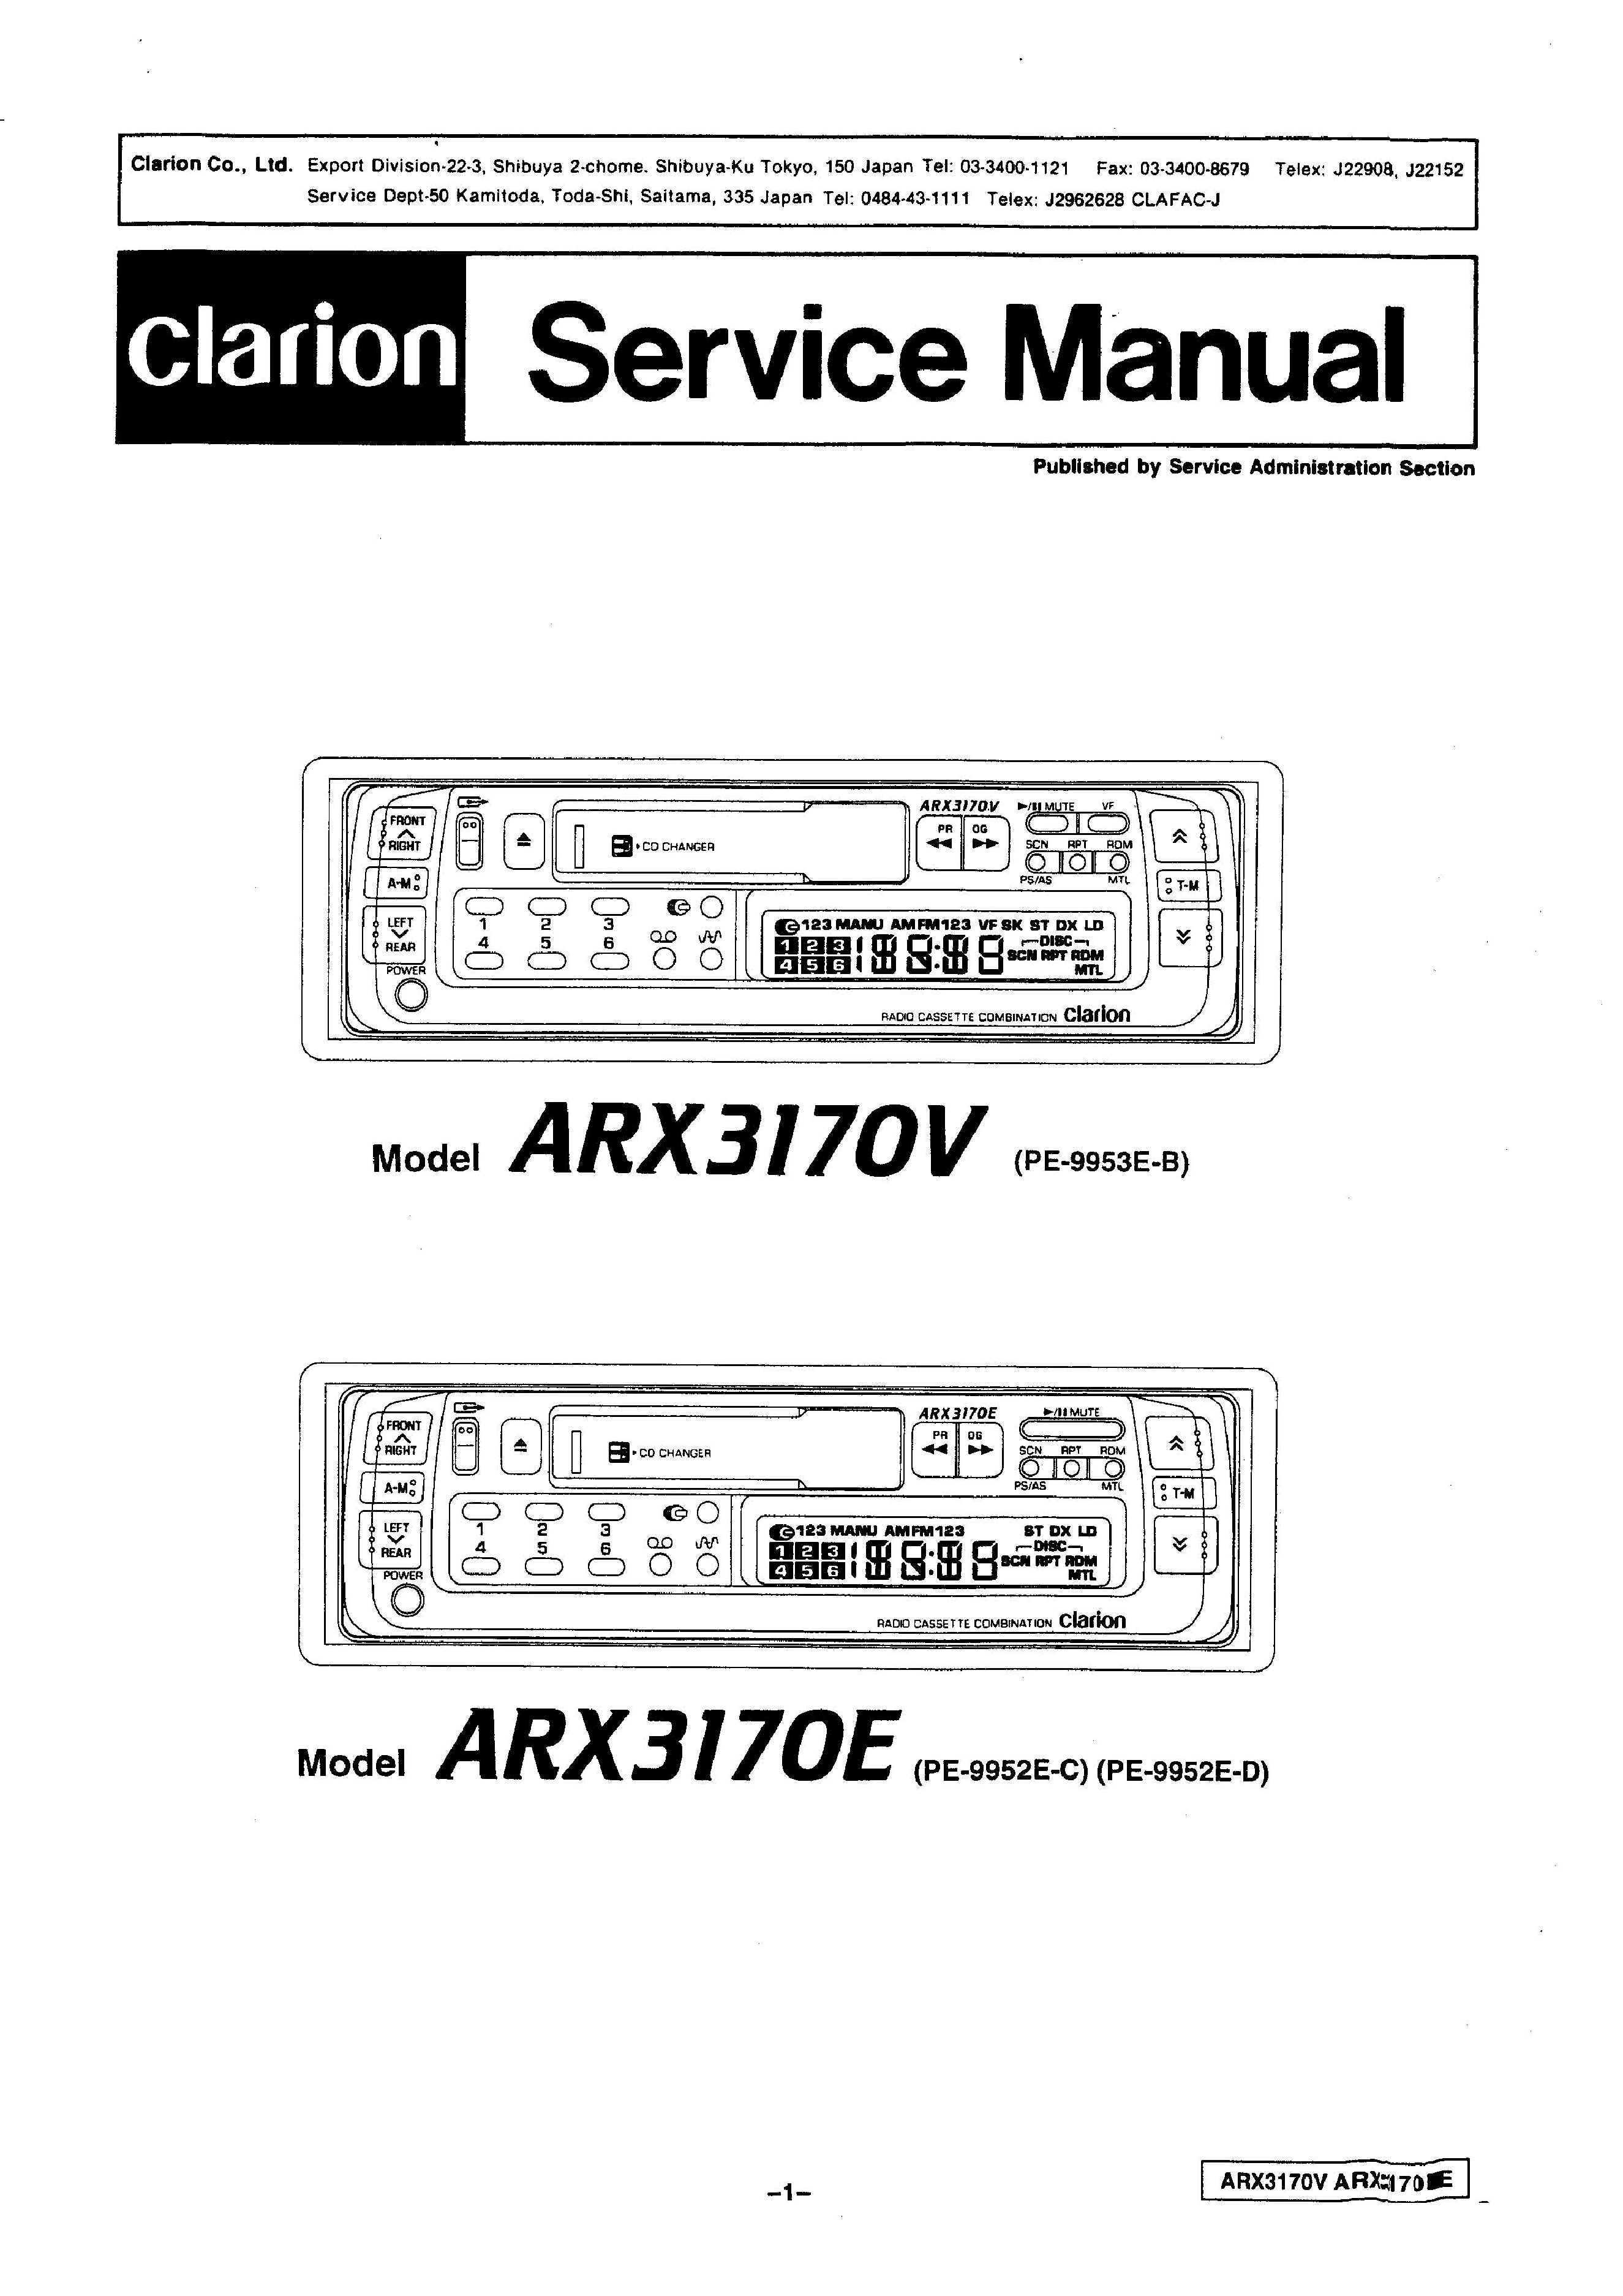 Service Manual For Clarion Arx3170v E Download Wiring Diagram Free Schematic